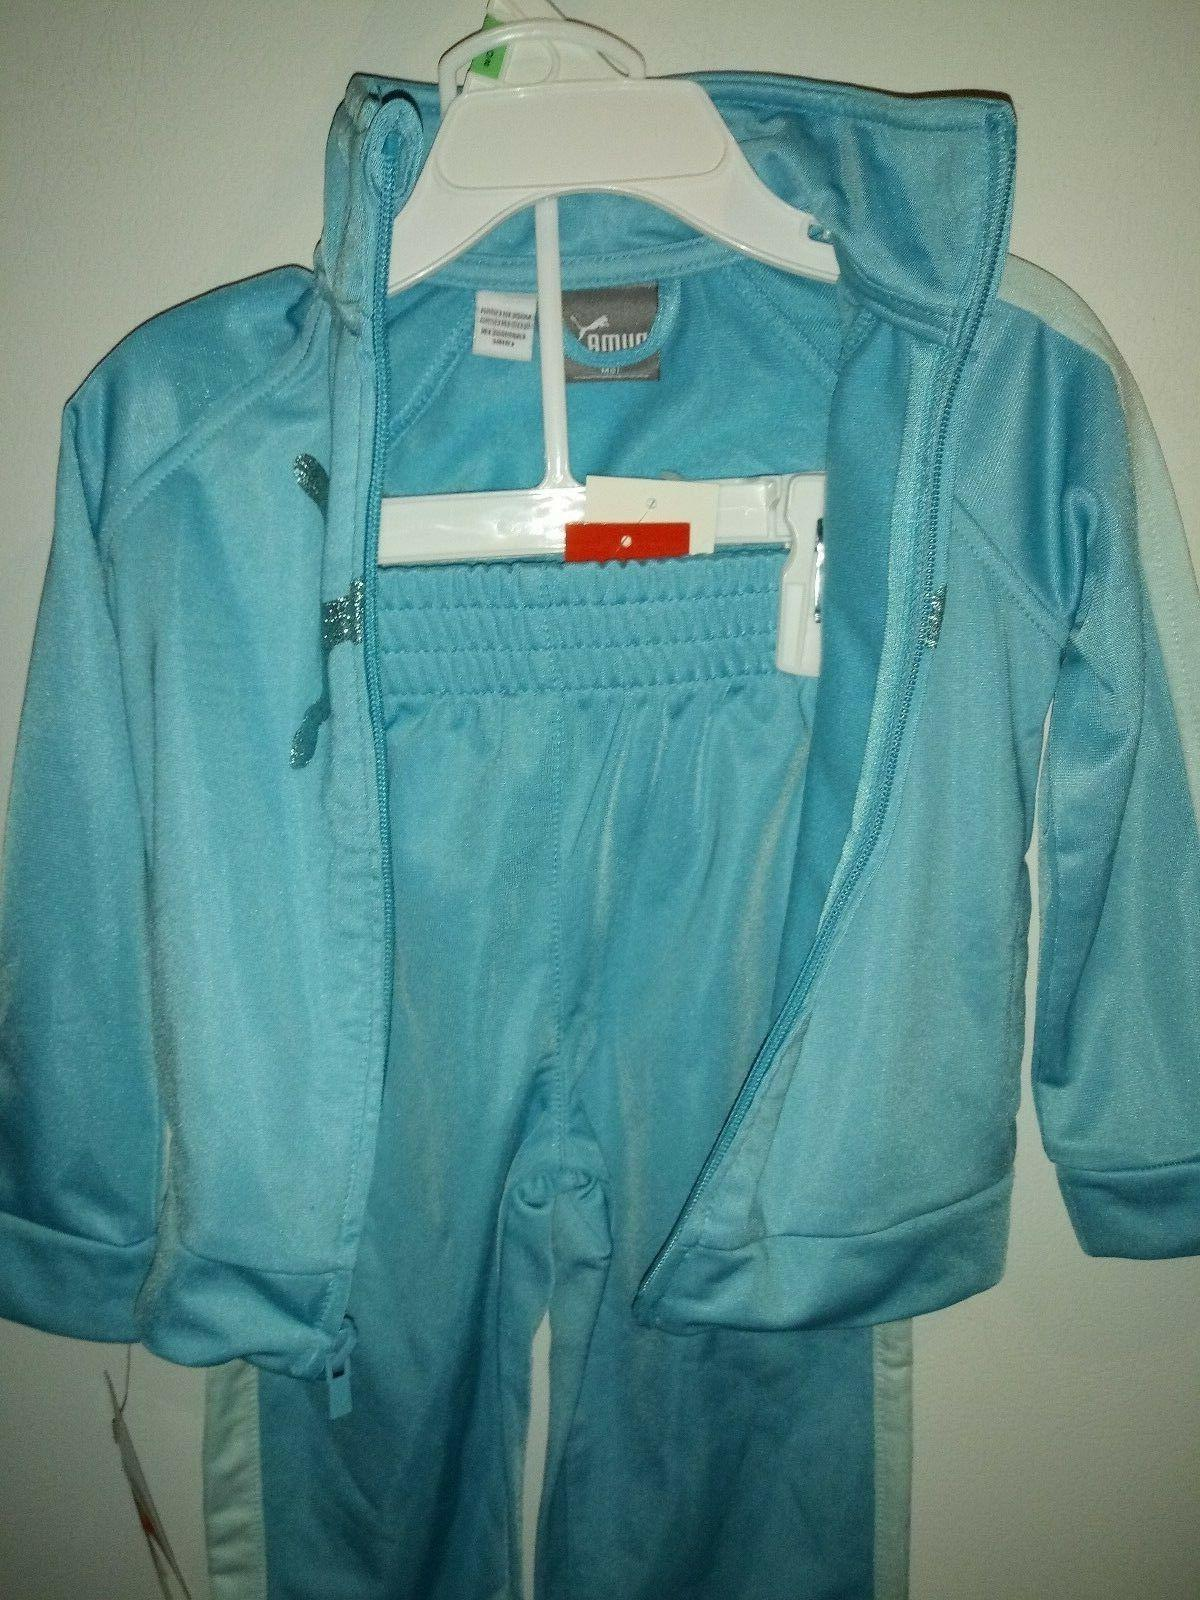 Puma set for babies Toddlers girls various blue